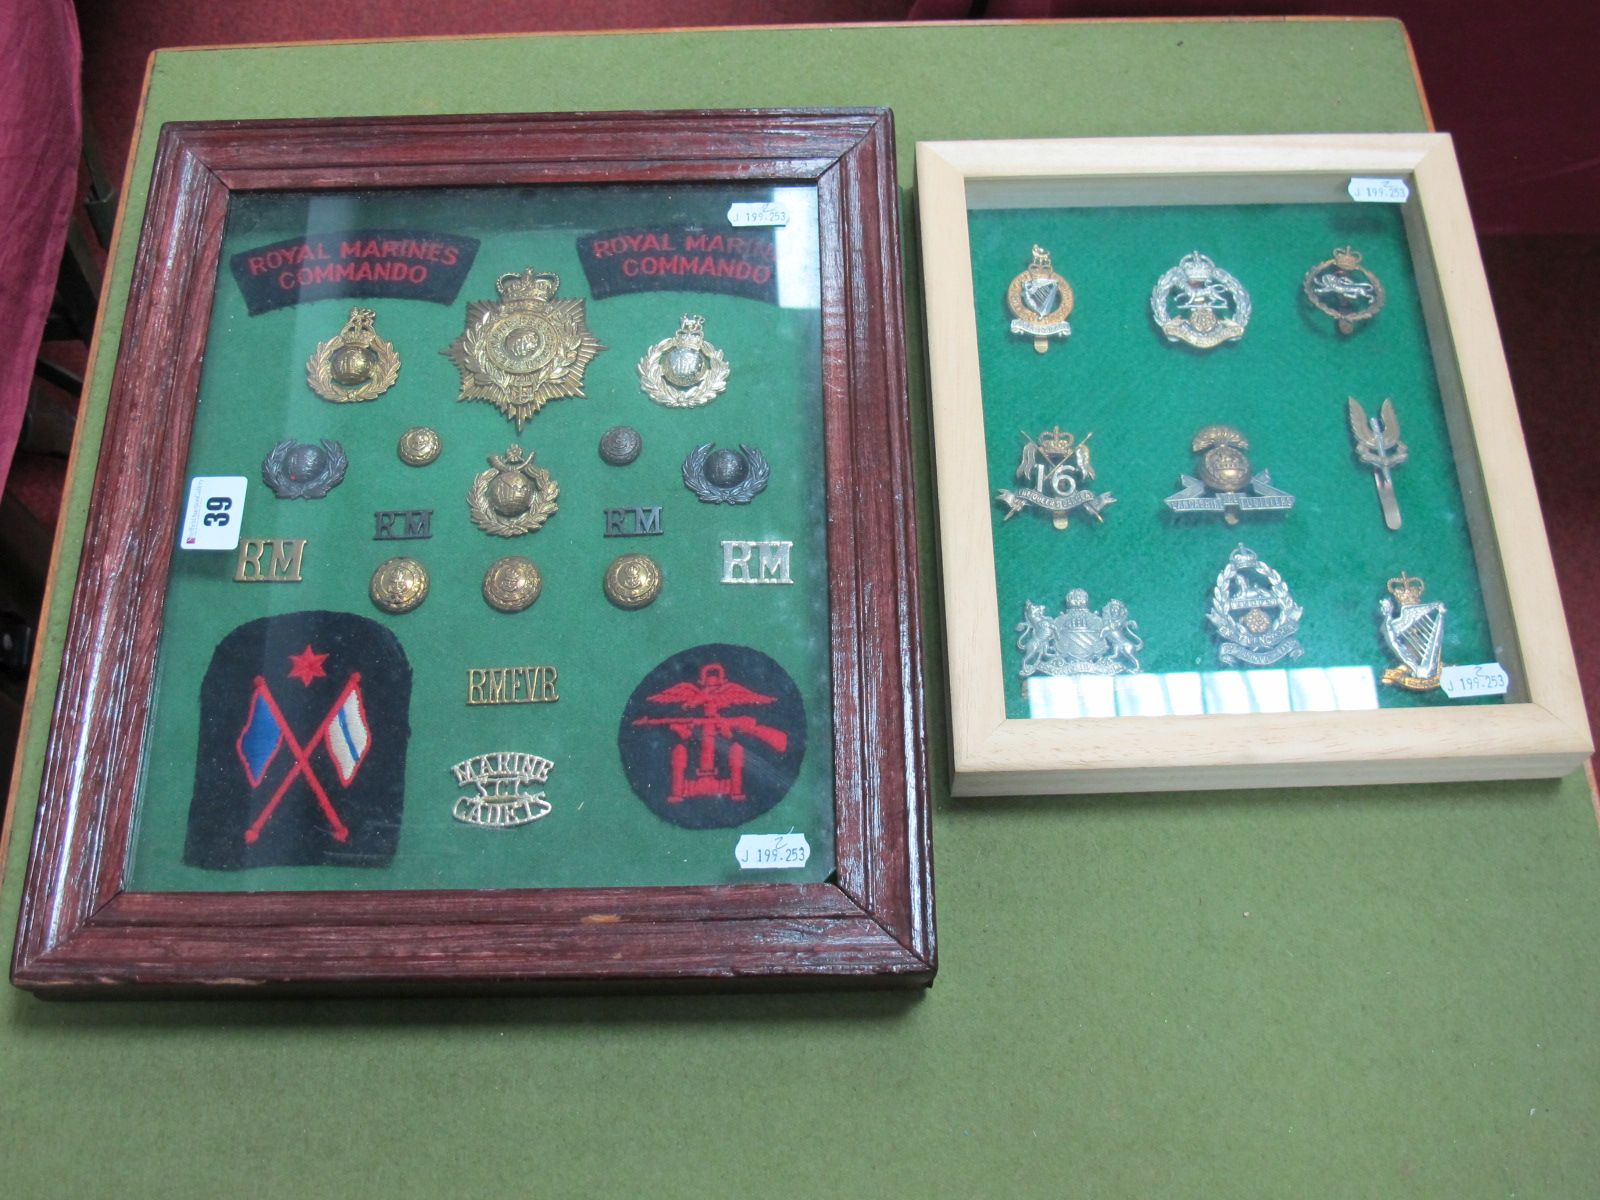 Lot 39 - Two Framed Military Cap Badge, Button and Cloth Patch Collections, including Royal Marines, Irish